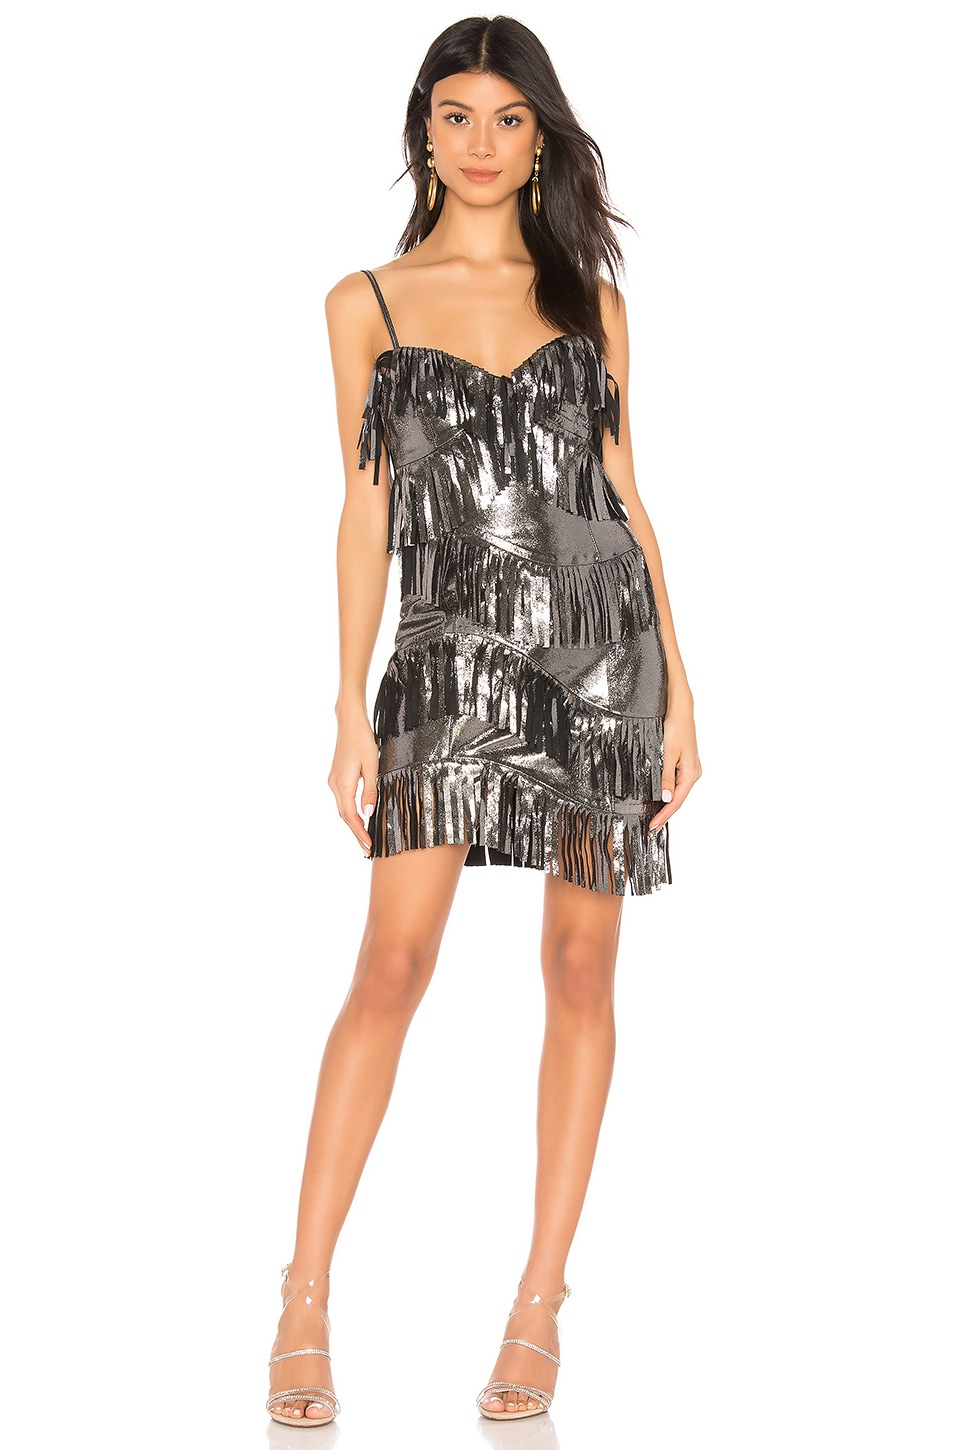 X by NBD Cristal Metallic Dress in Silver